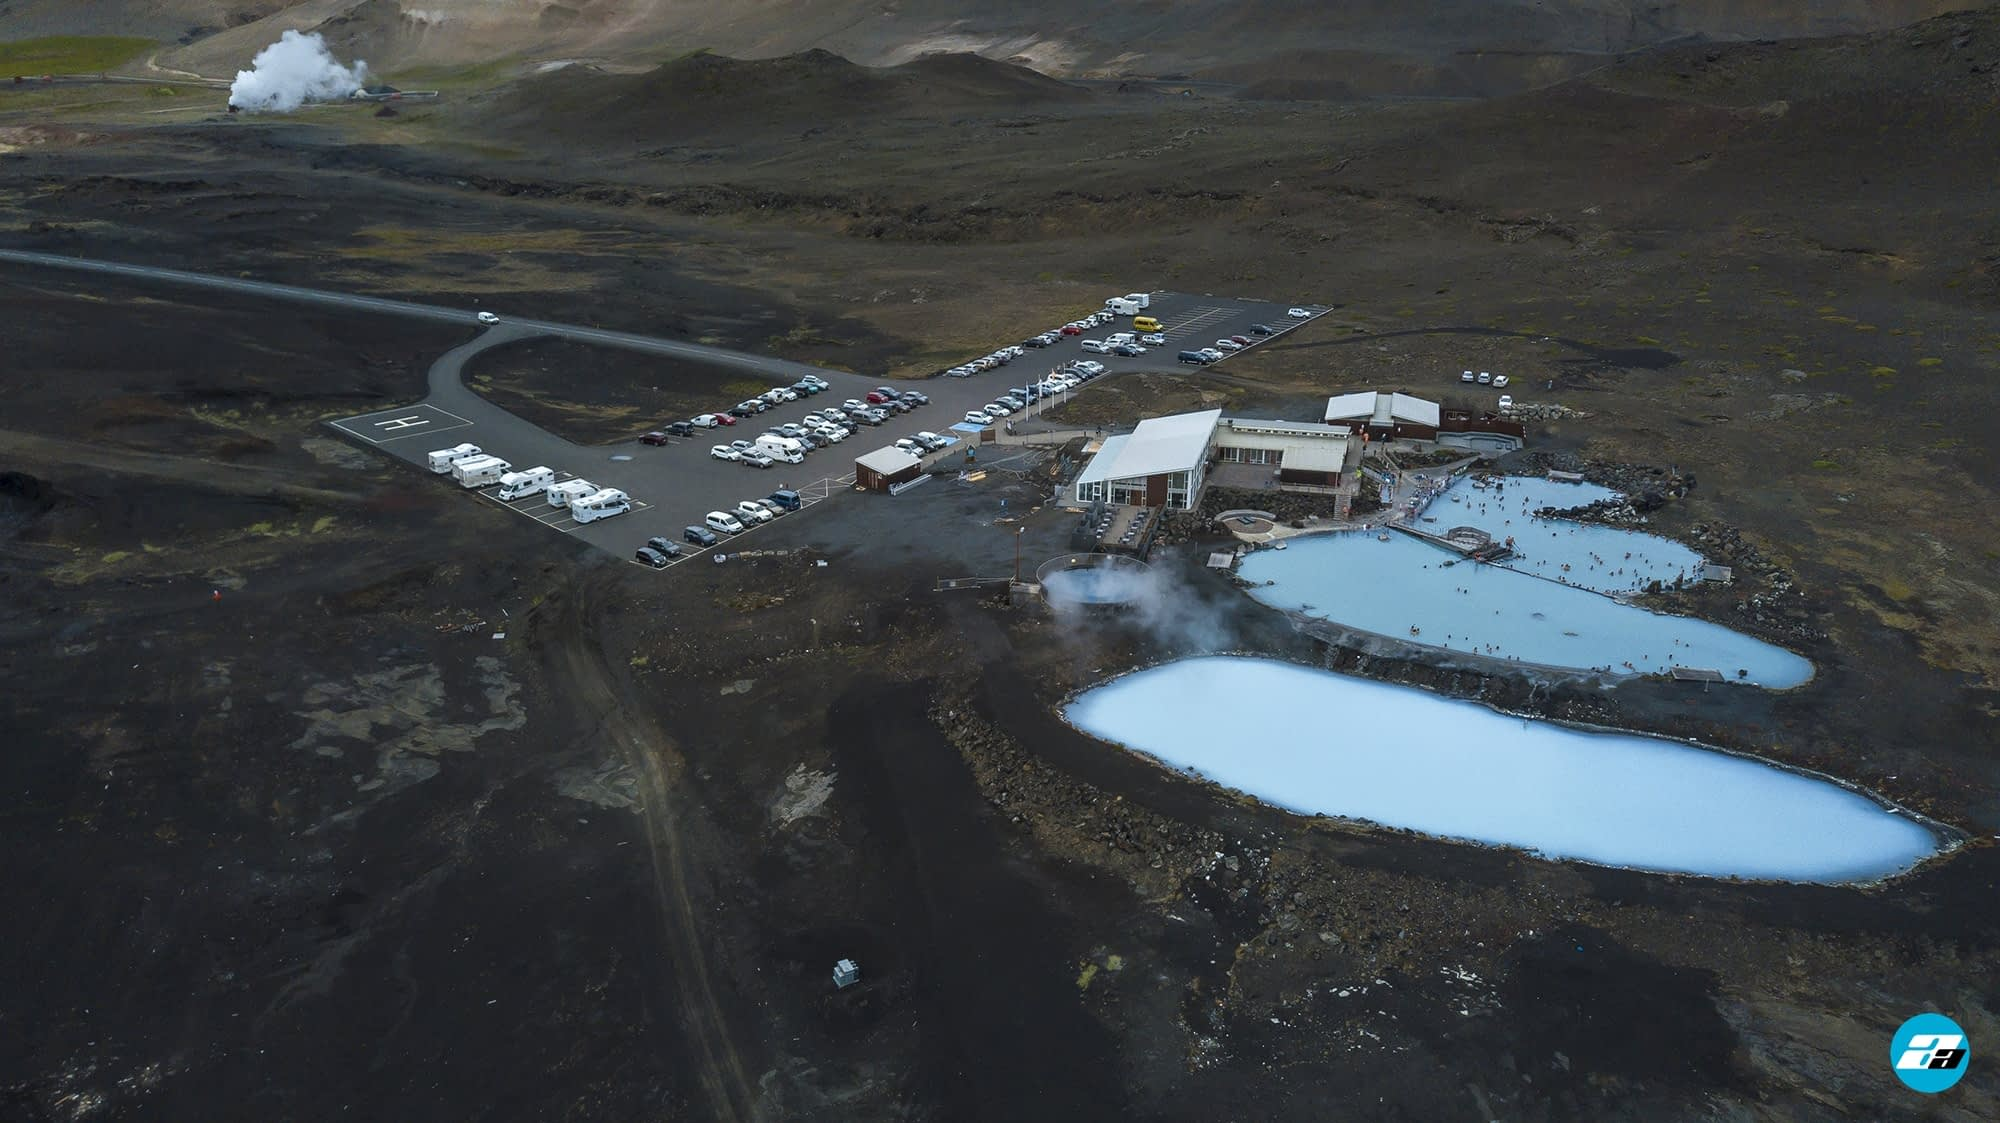 Iceland Travel, Ring Road, Geothermal Spas. Aerial Photo